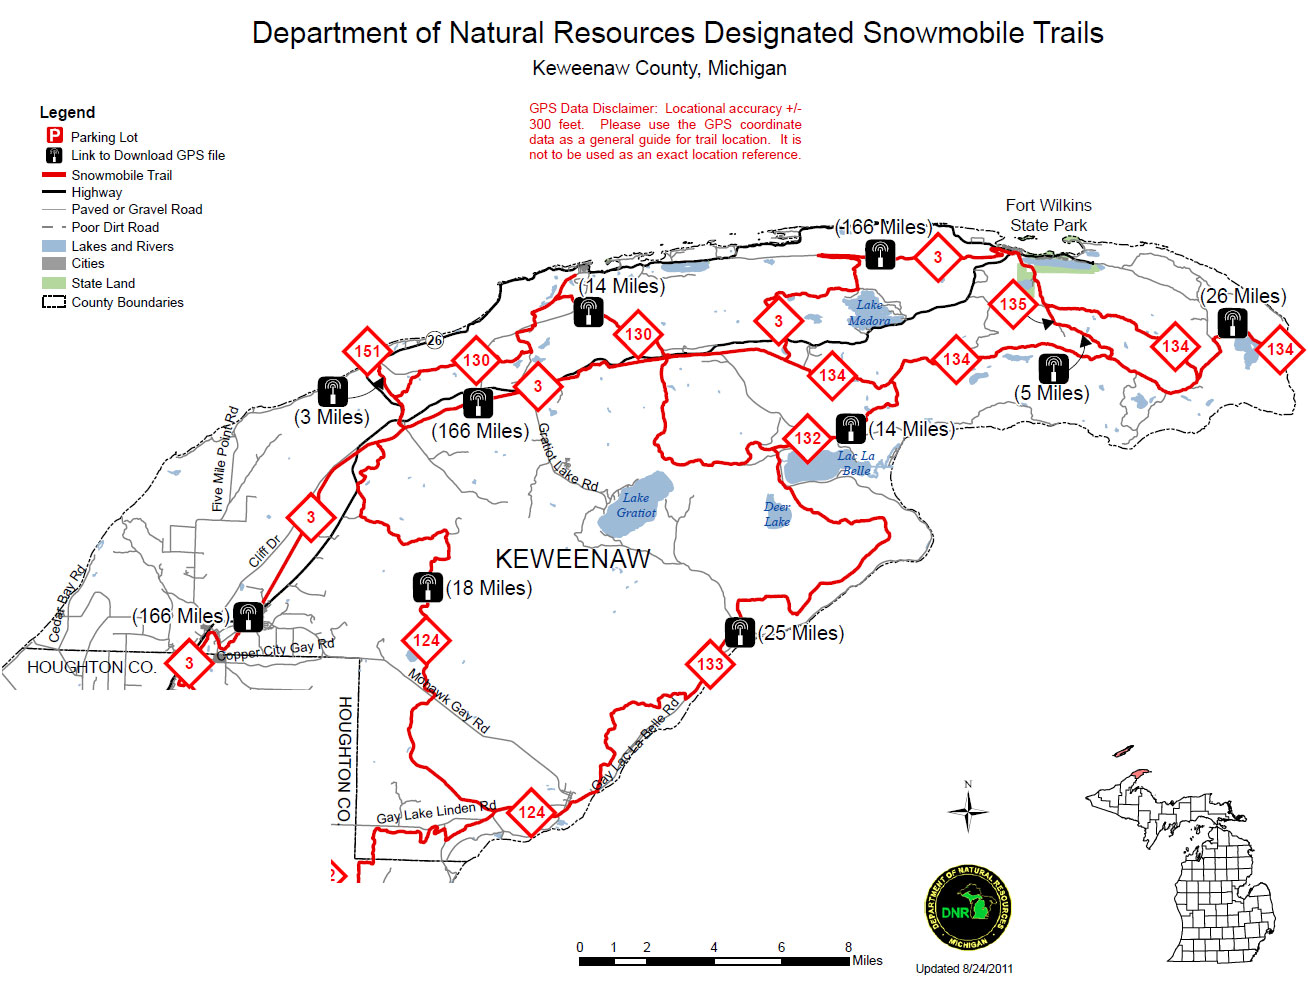 a map of the Keweenaw snowmobile trail